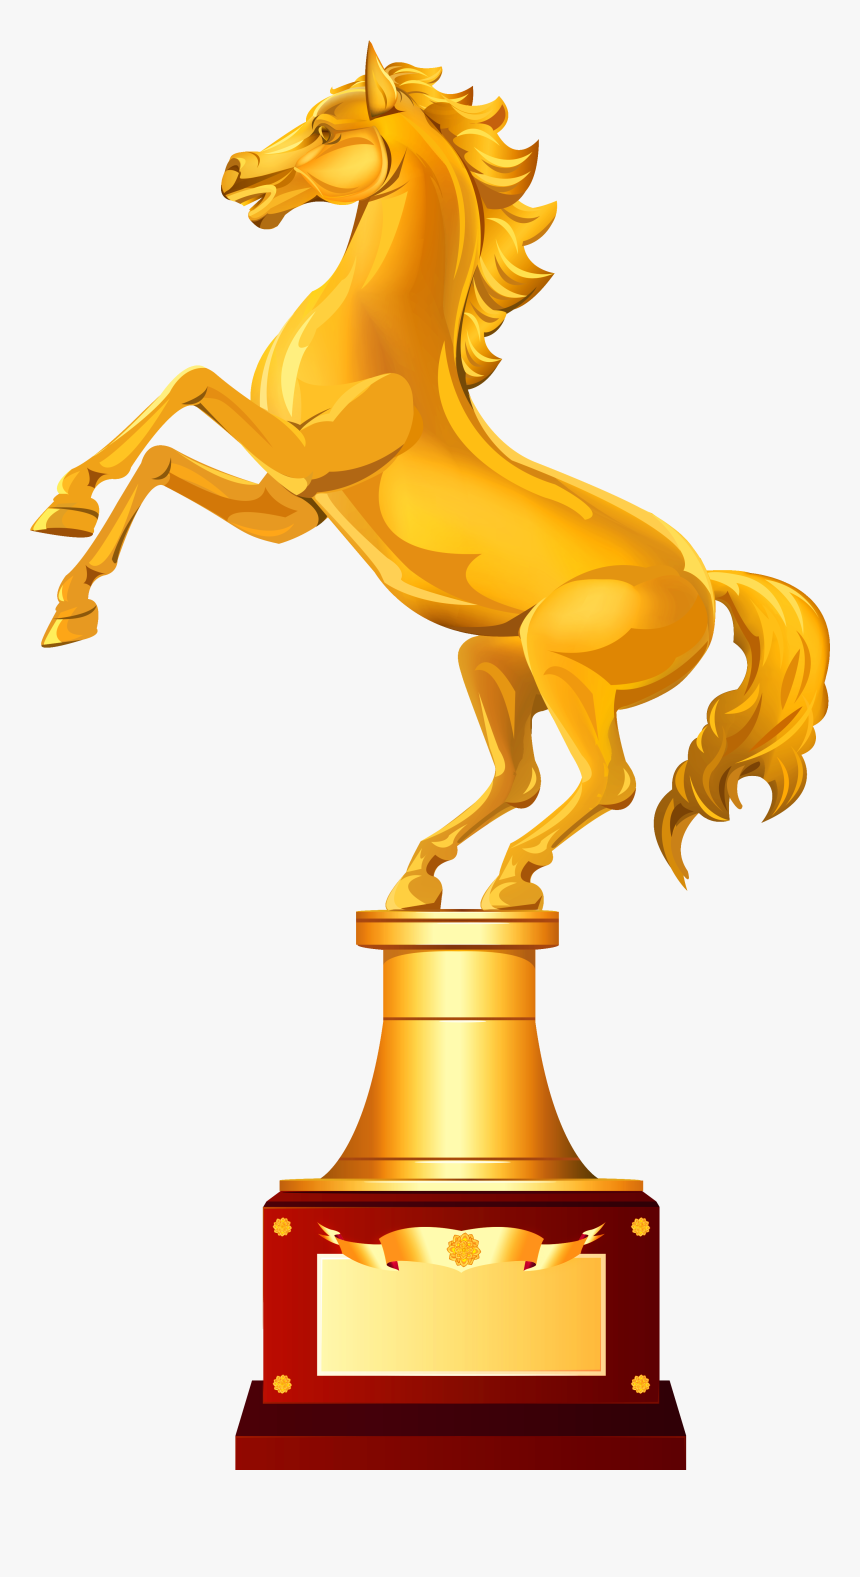 Trophy Free Download Png - Horse Trophy Clipart, Transparent Png, Free Download